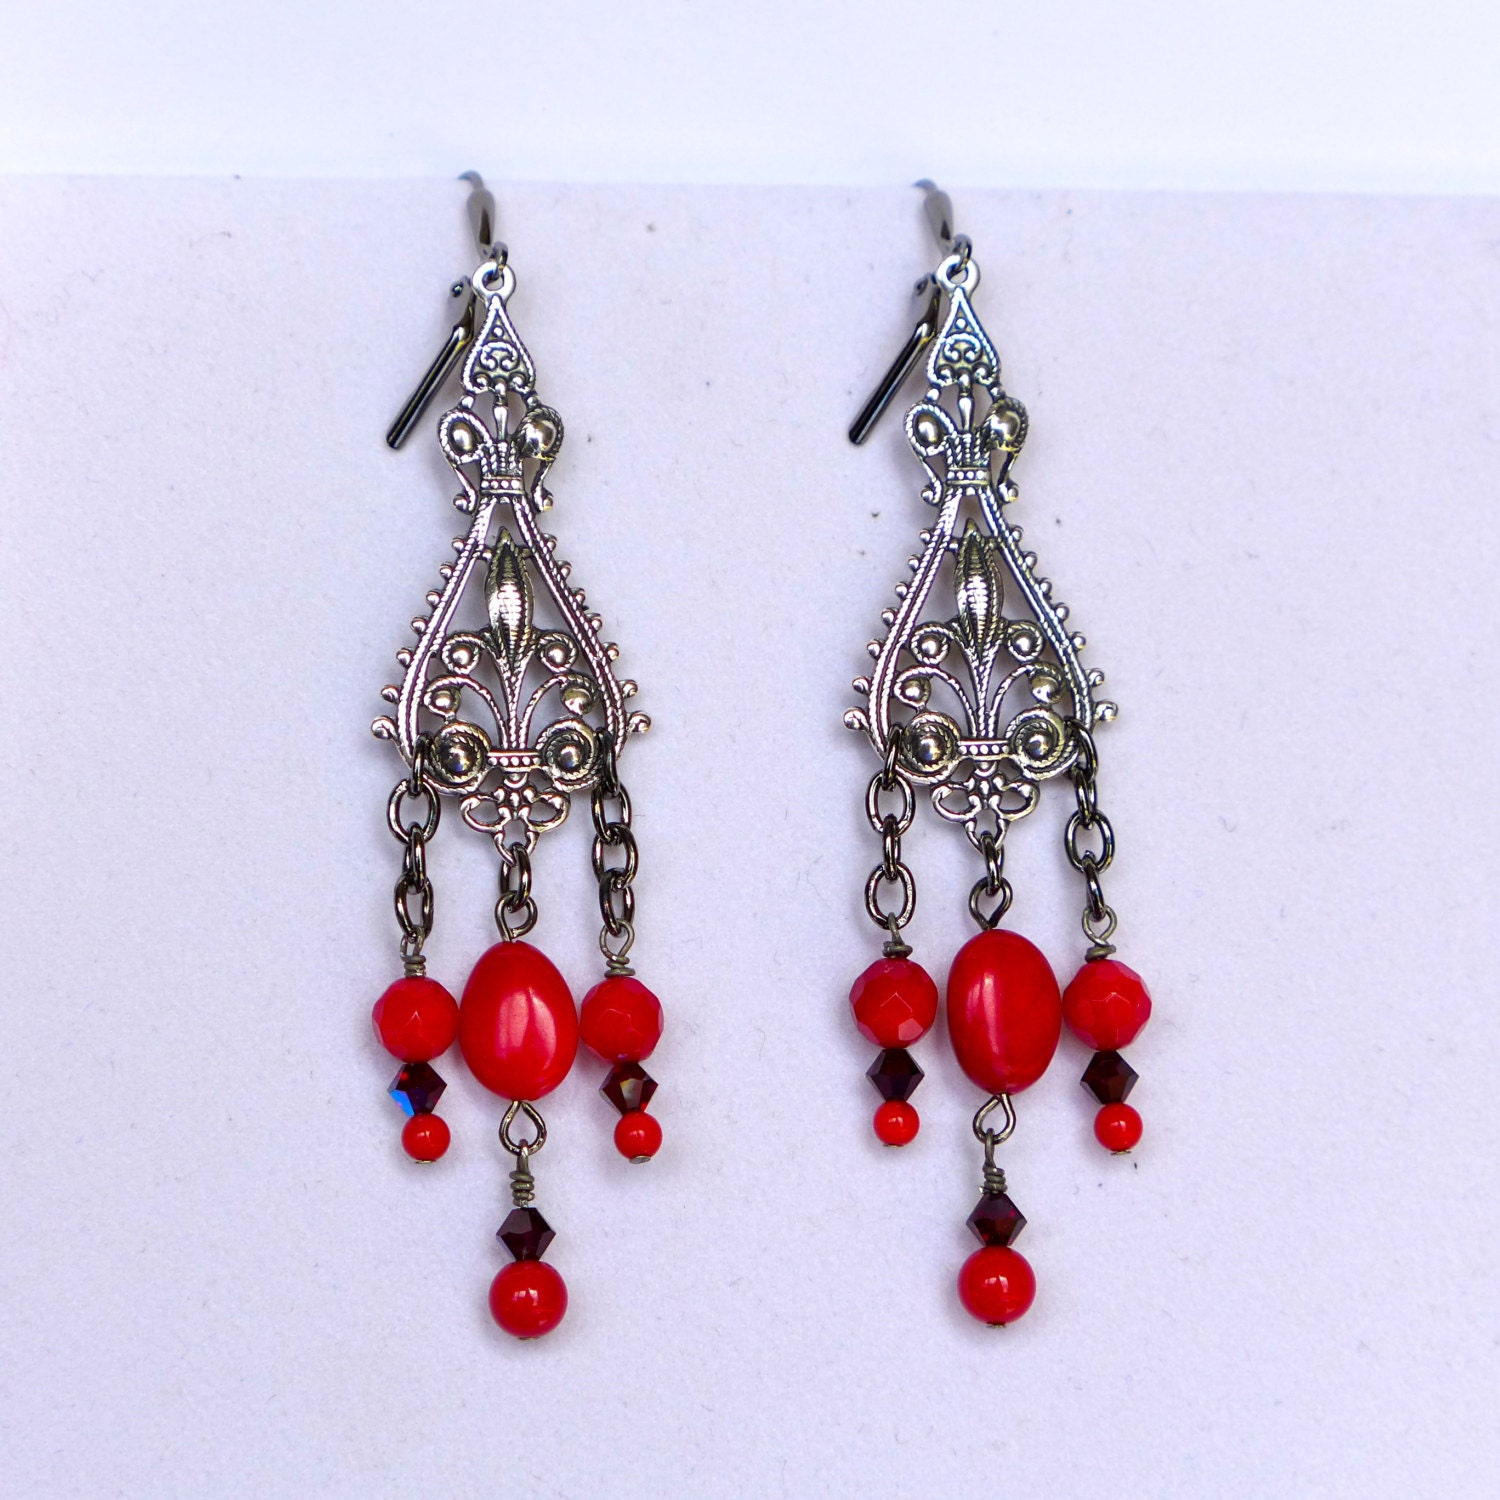 Red Coral Chandelier With 3 Lights: Victorian Antique Silver Red Coral Chandelier Earrings E950